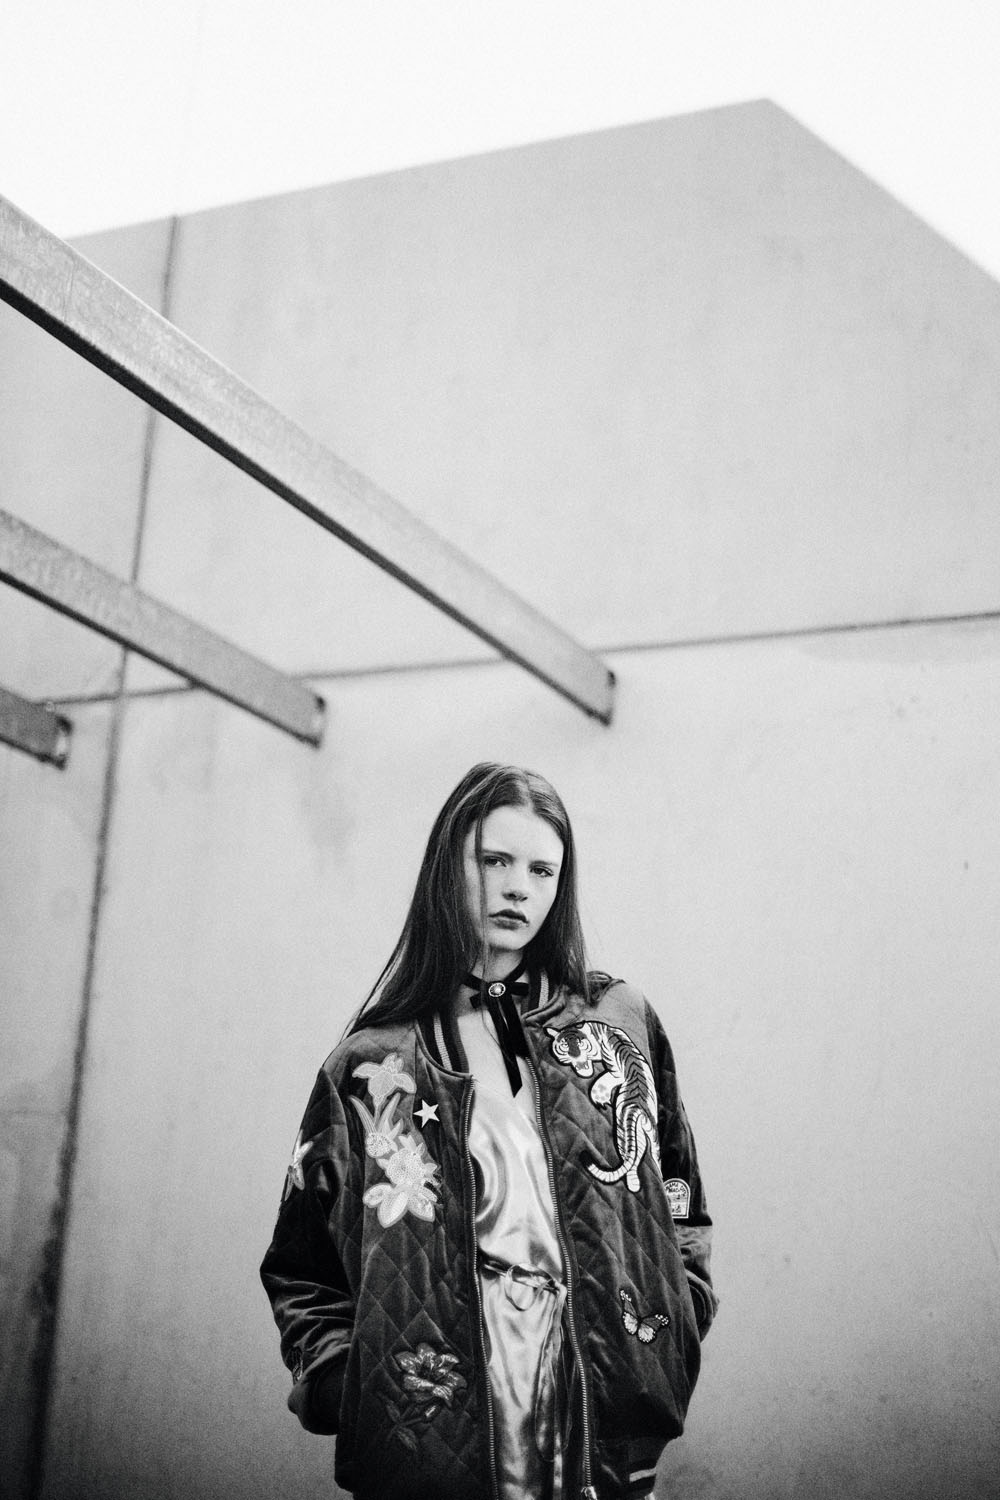 Monochrome moments by Veronika Bures for CHASSEUR MAGAZINE (10)